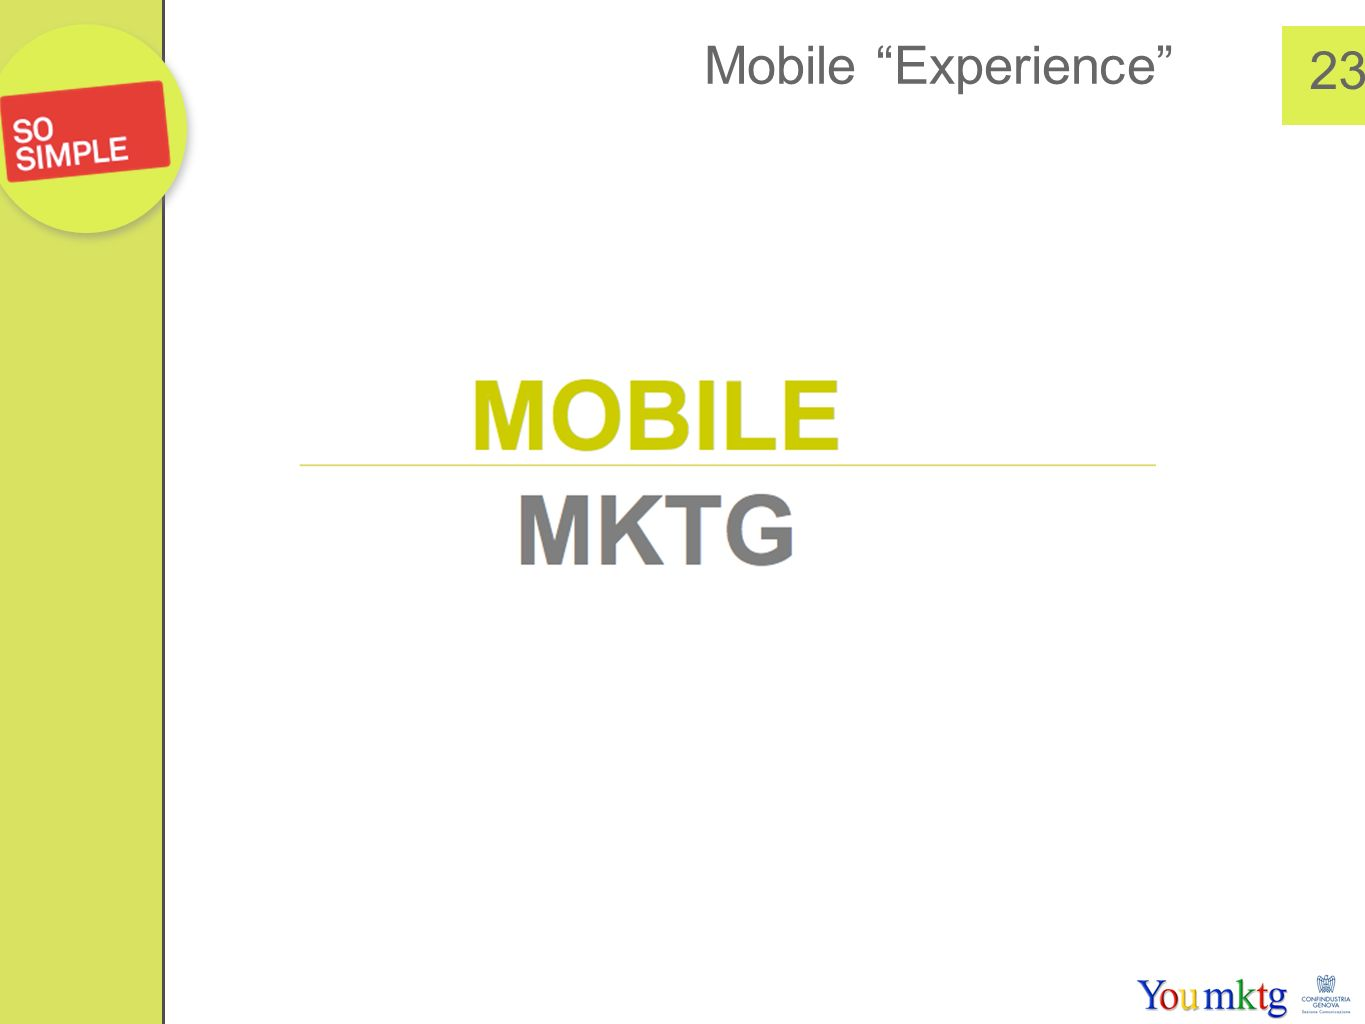 Mobile Experience 23